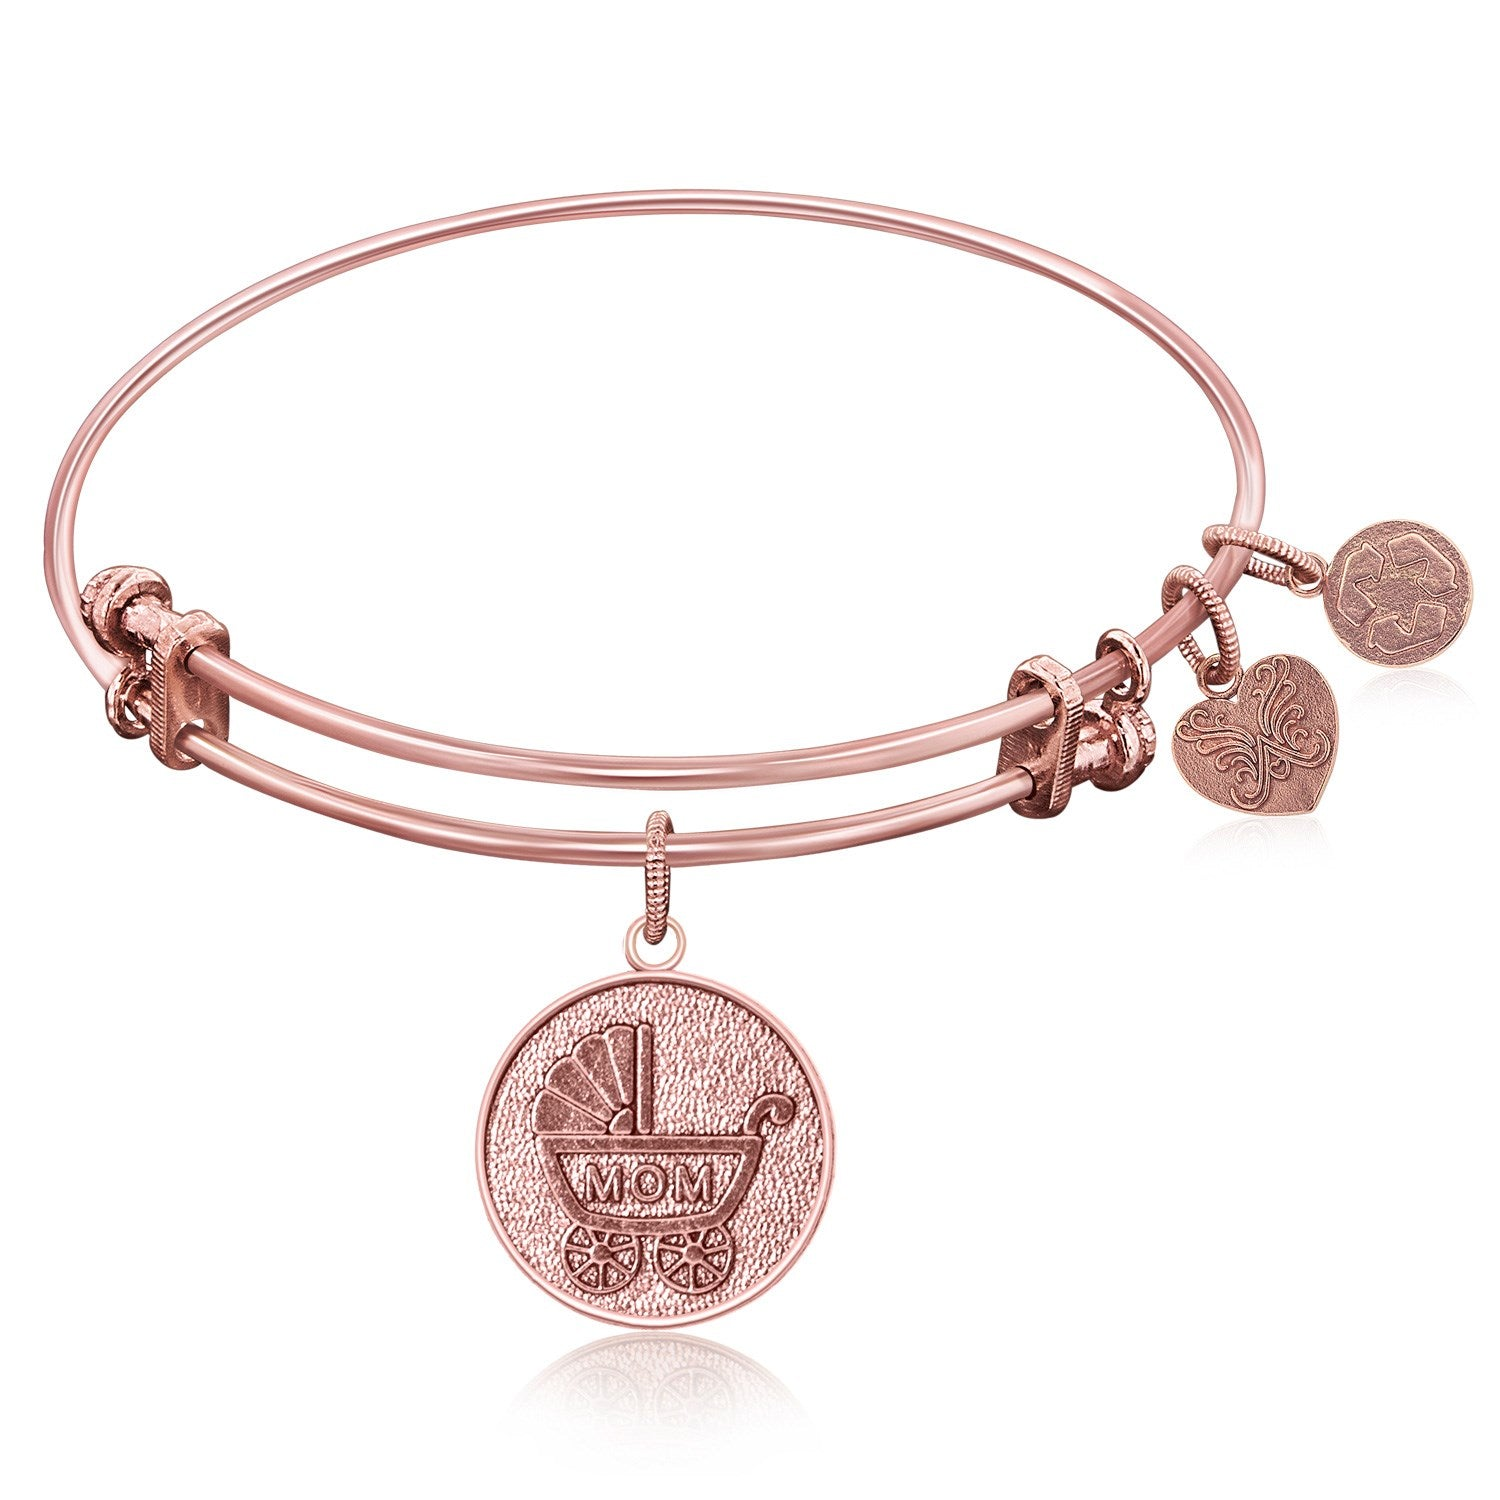 Expandable Bangle in Pink Tone Brass with New Mom Symbol